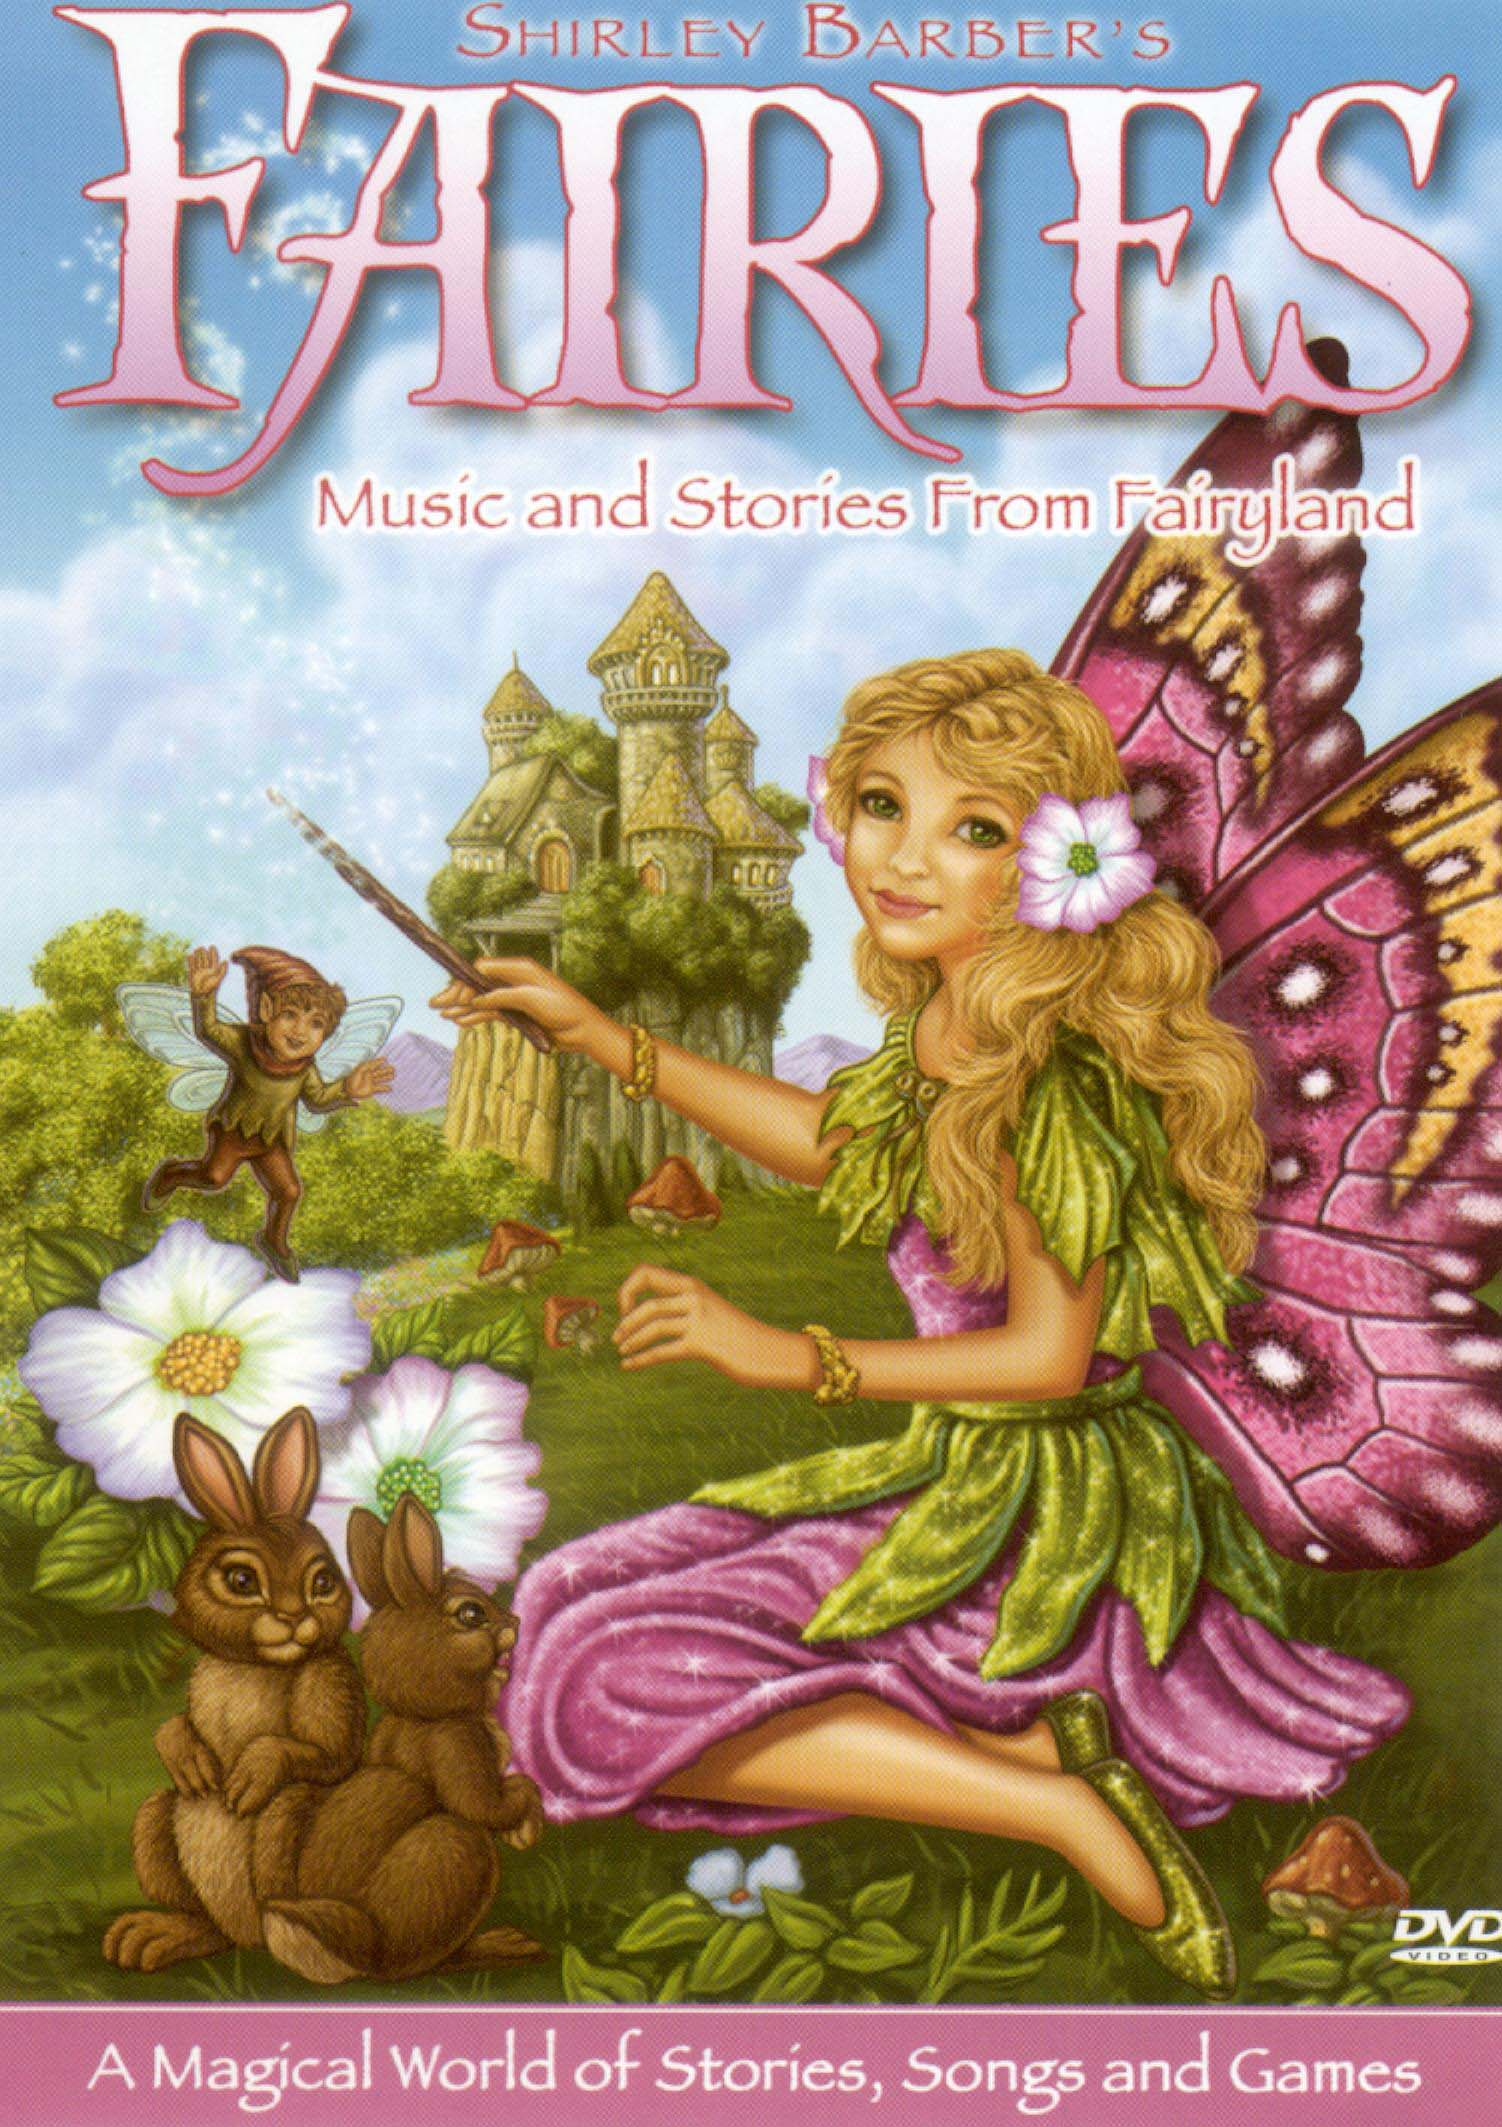 Fairies: Music and Stories From Fairyland